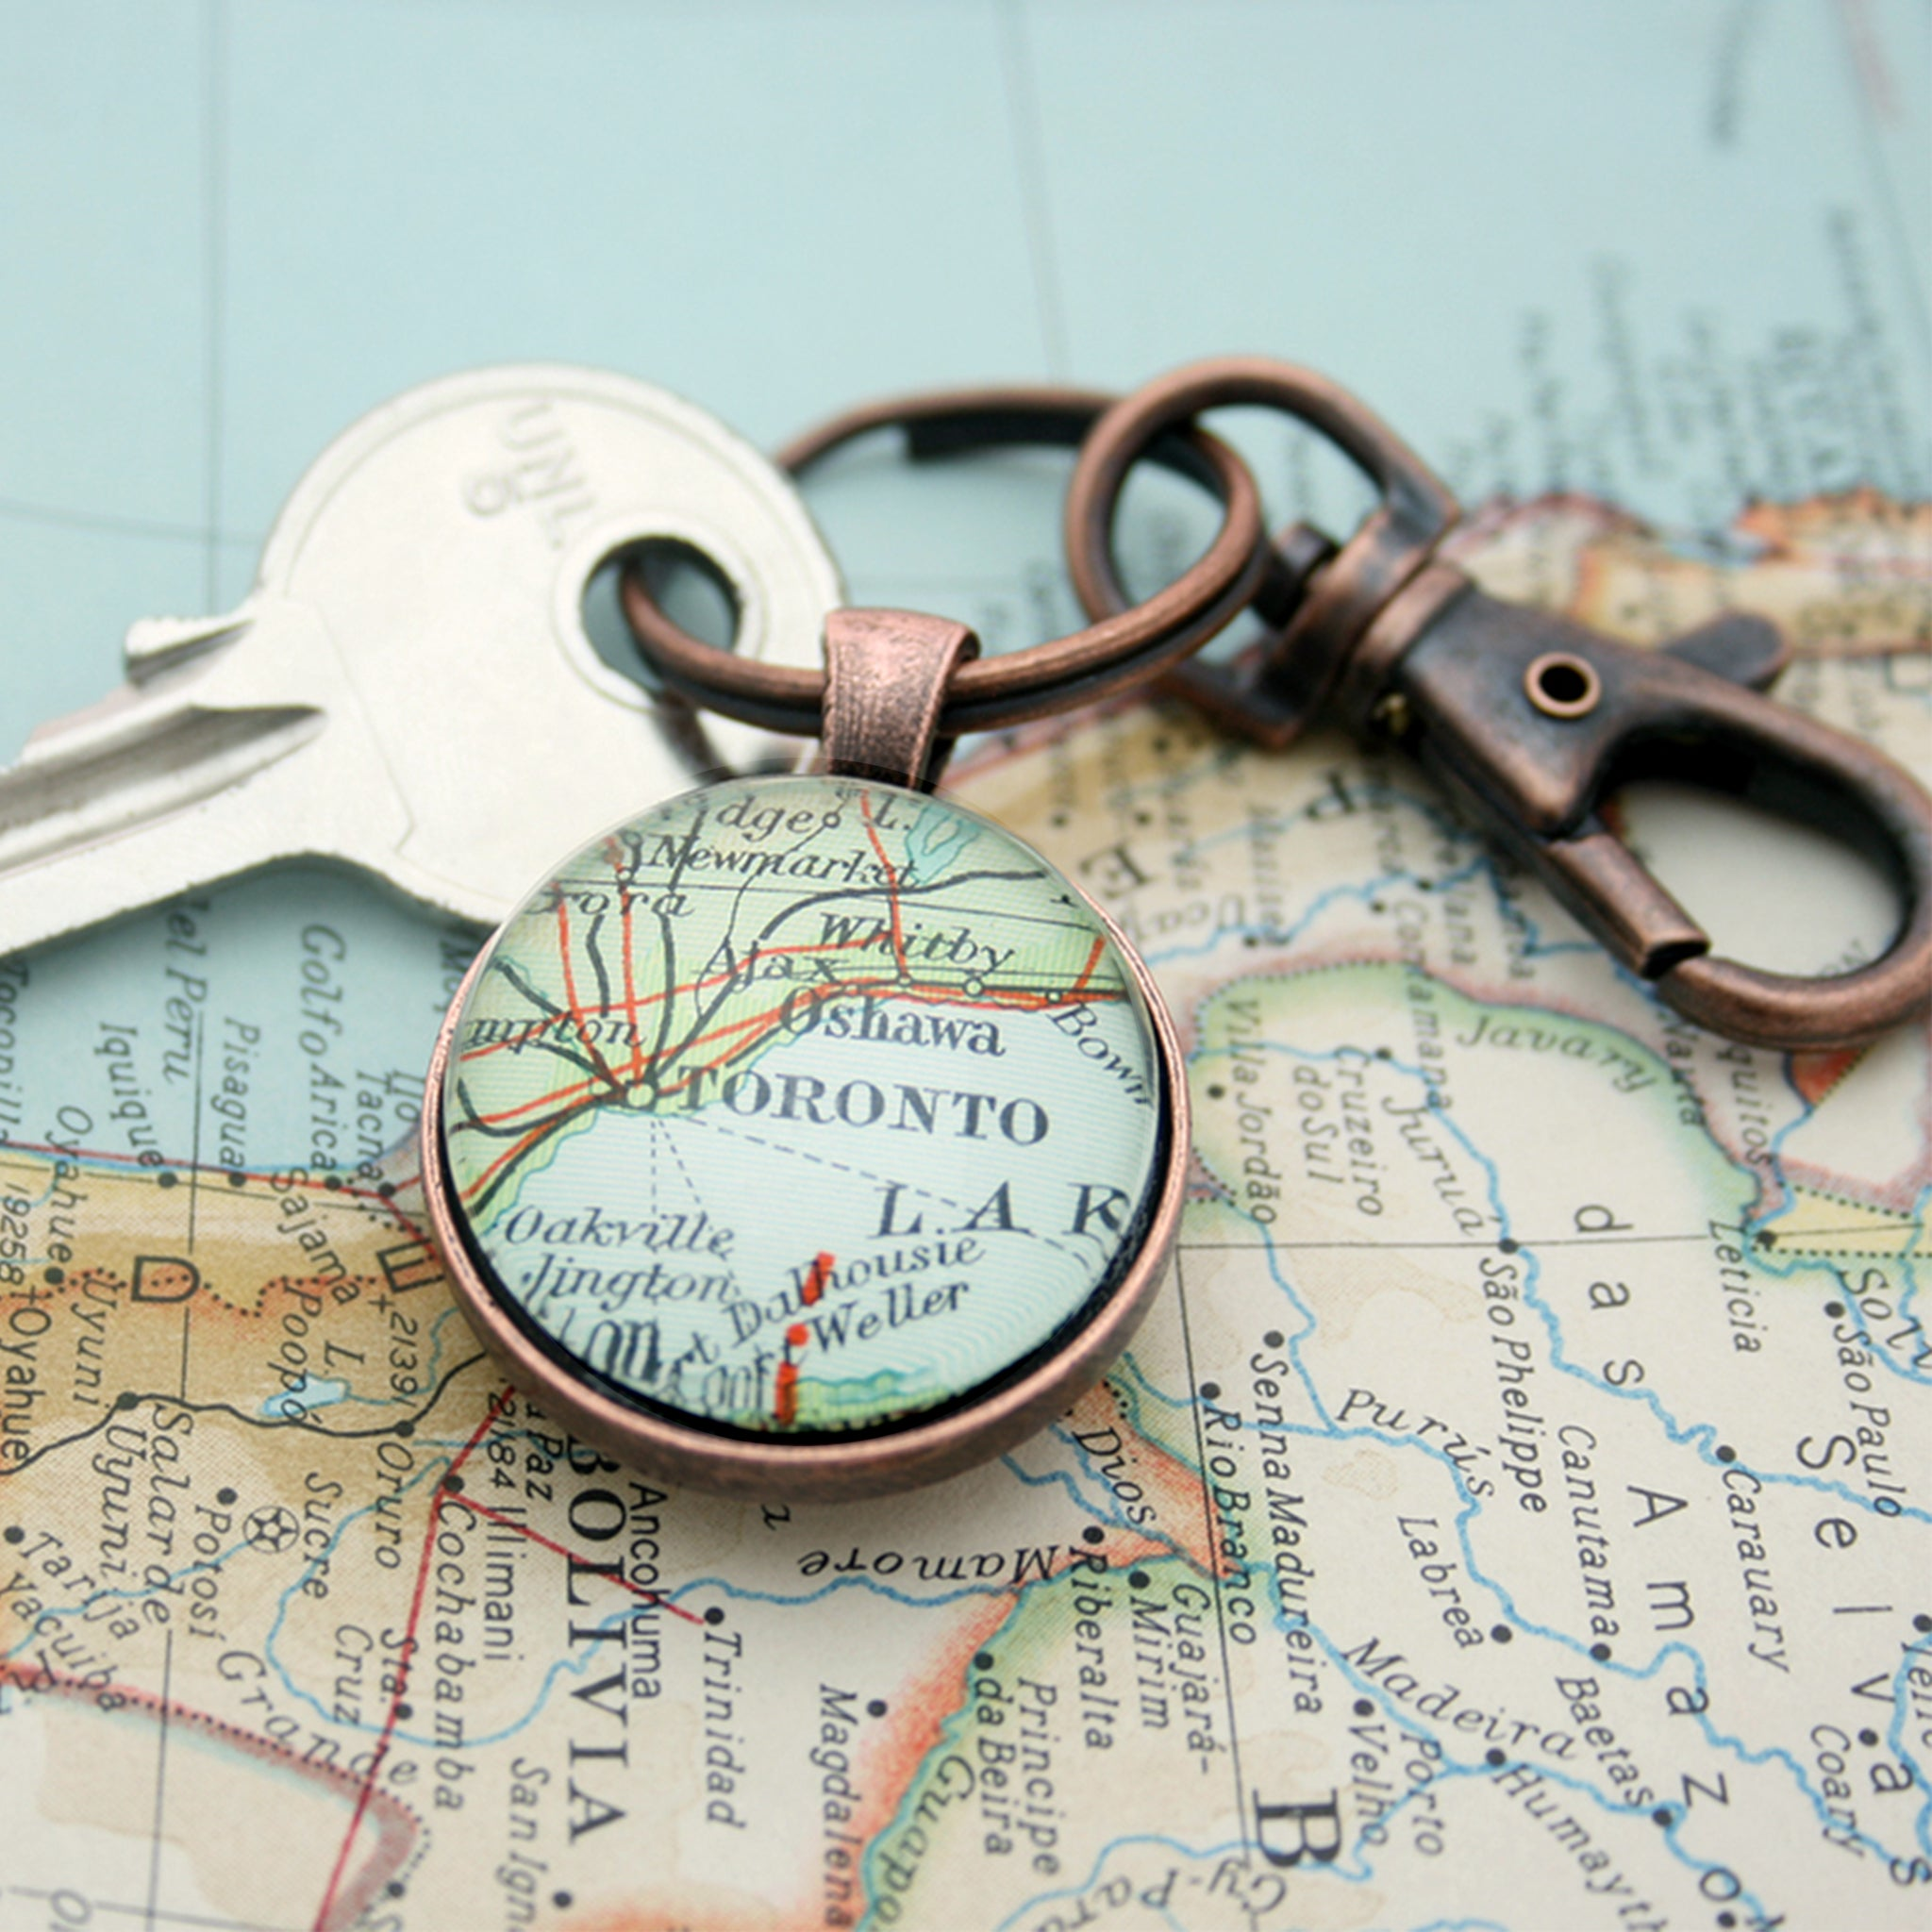 Personalised Keyring in copper color featuring map of Toronto